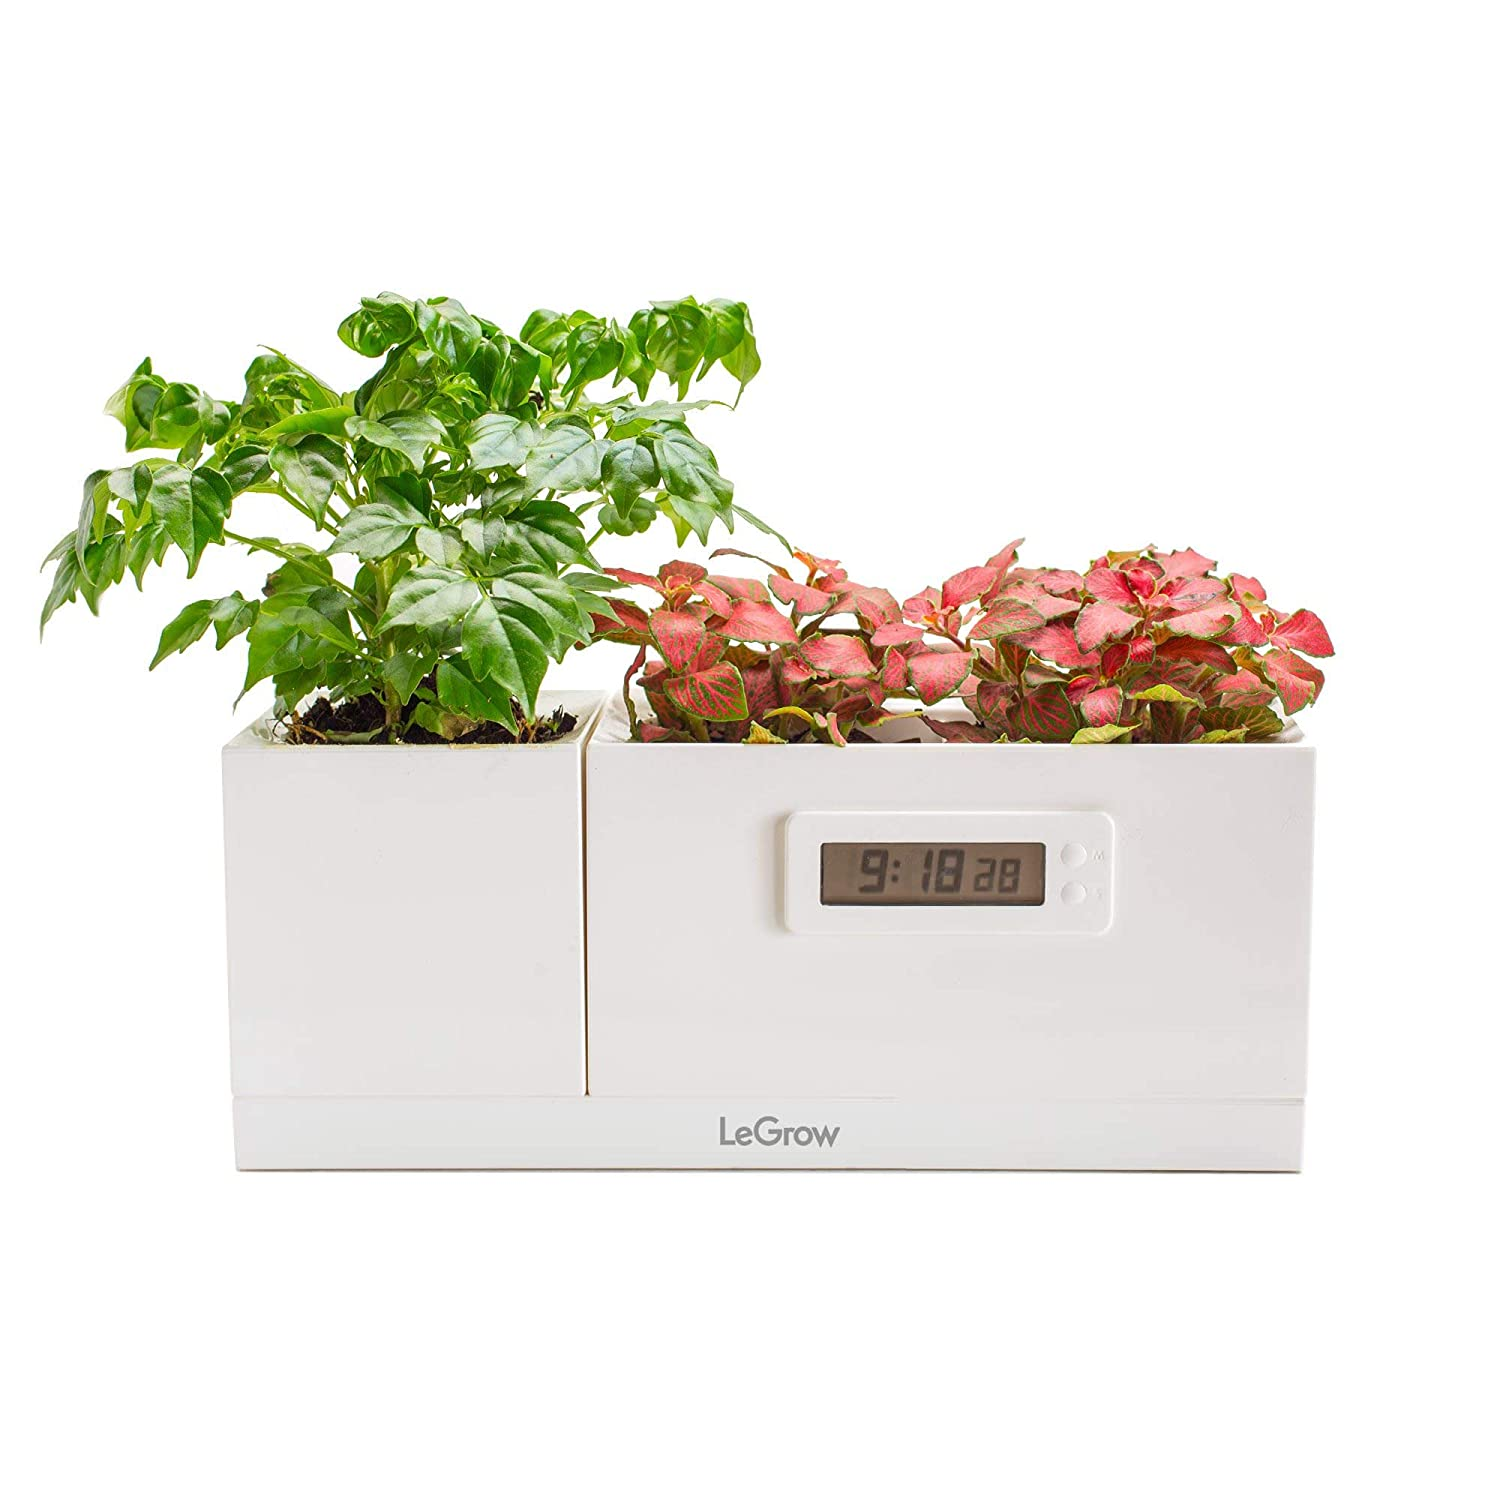 Ailixi Legrow Indoor Garden Kit Hydroponics Garden Growing System with Magical Plant Clock 3 Gardening Pots Greenhouse for Home Office Decoration